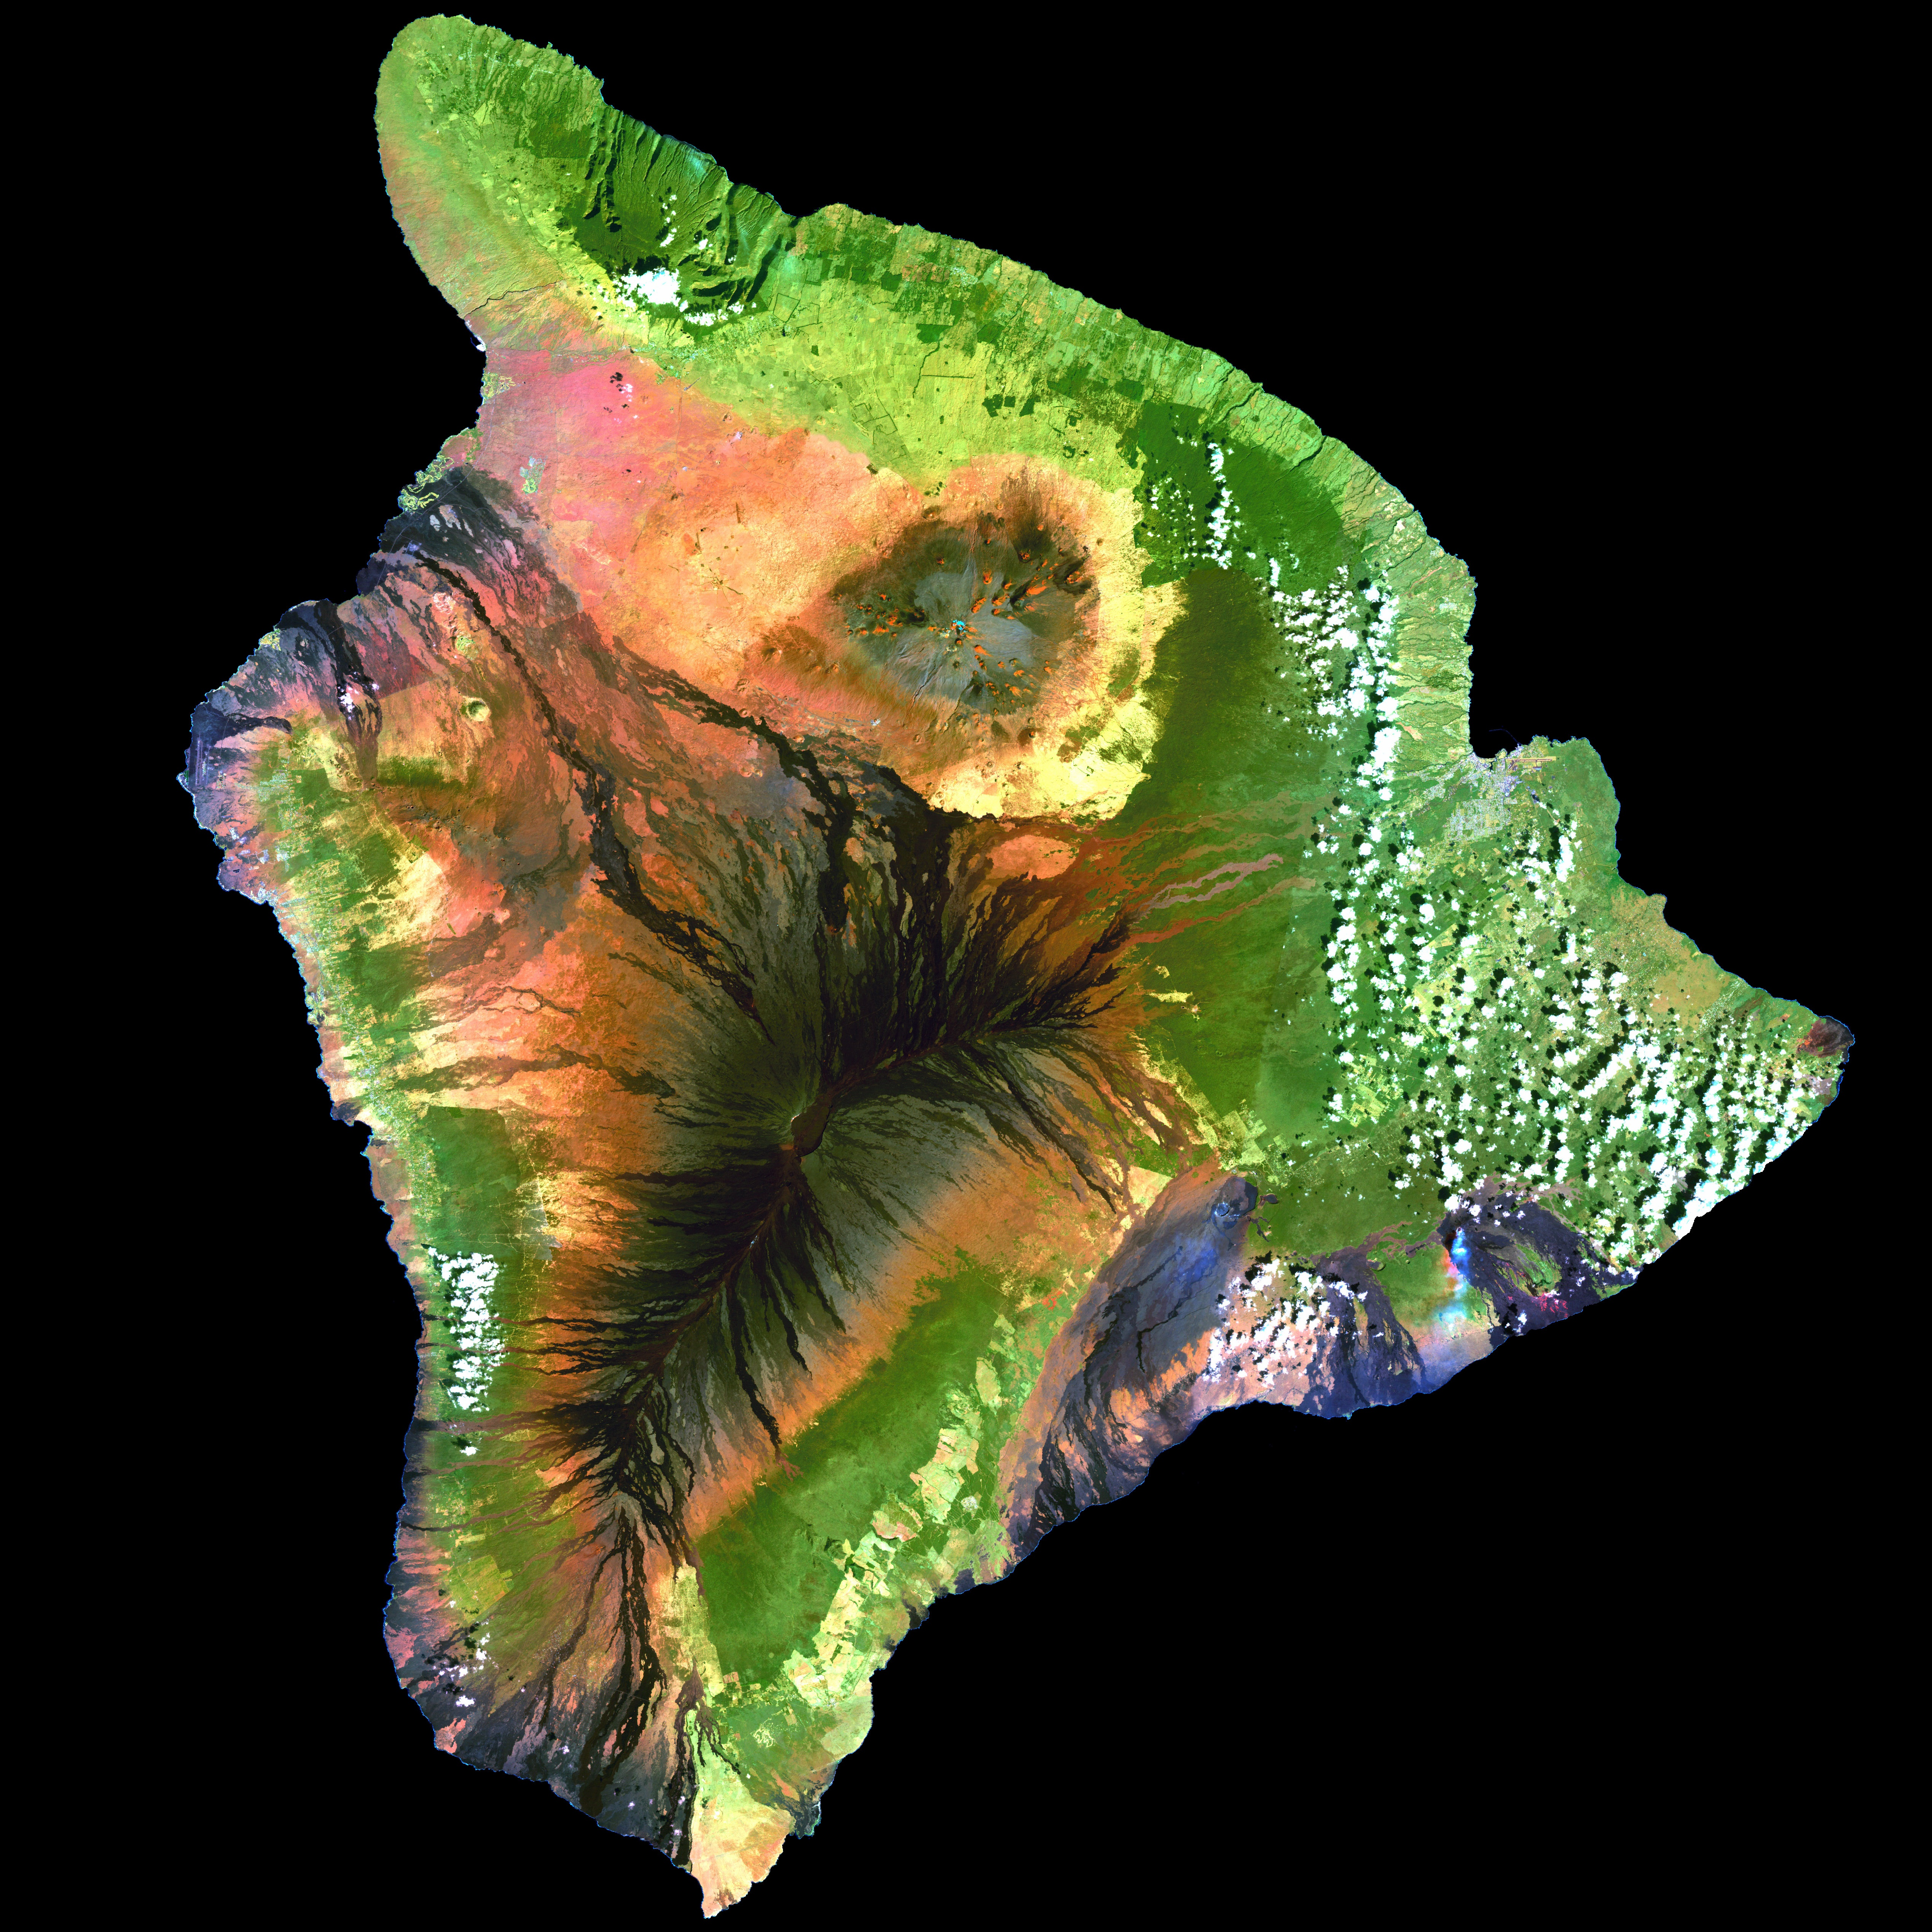 Island of Hawai'i